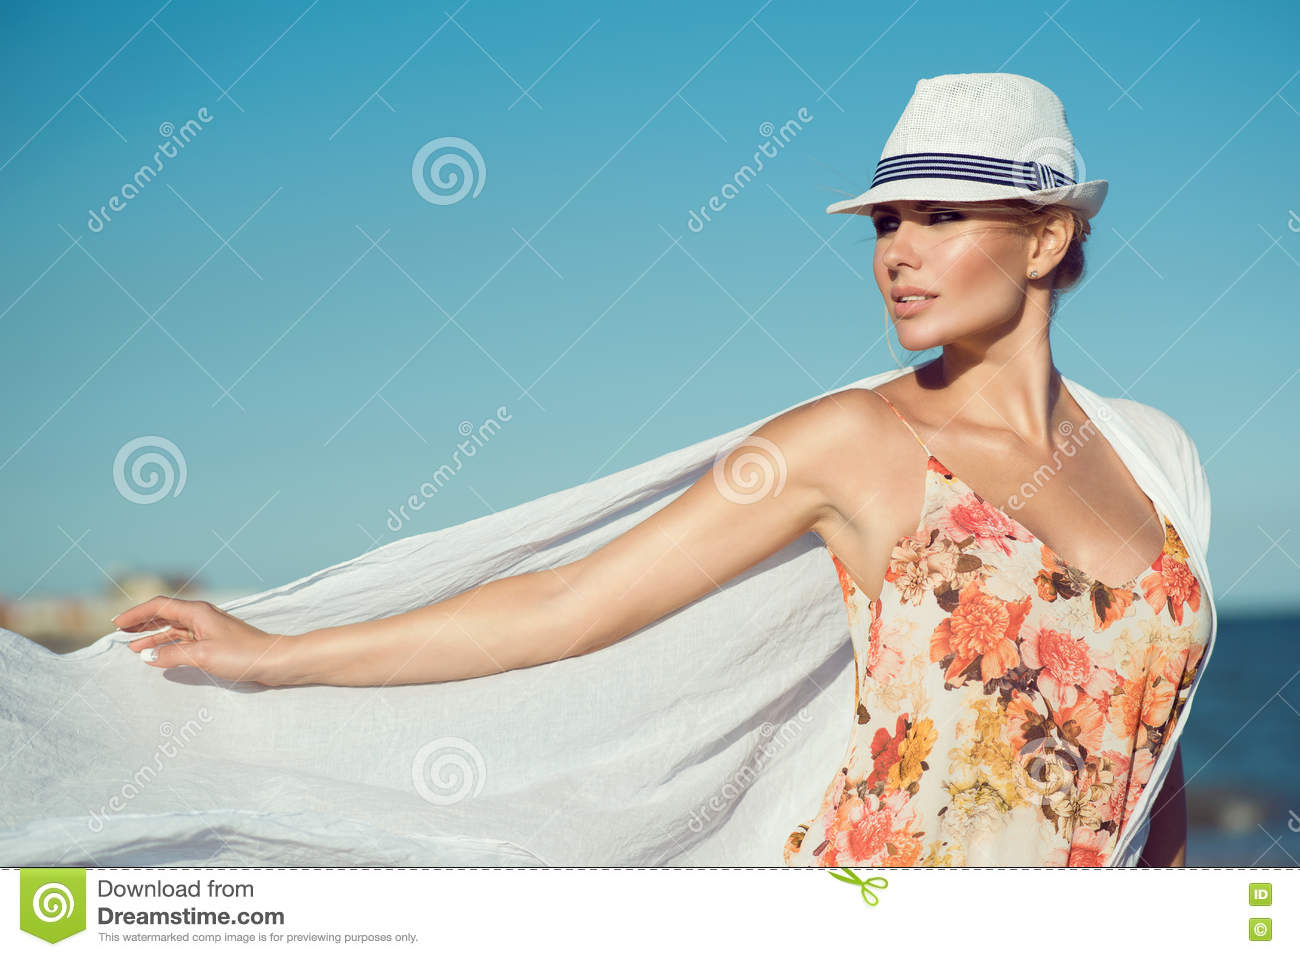 Beautiful Blond Woman In Stylish Hat And Bright Top With Flowers